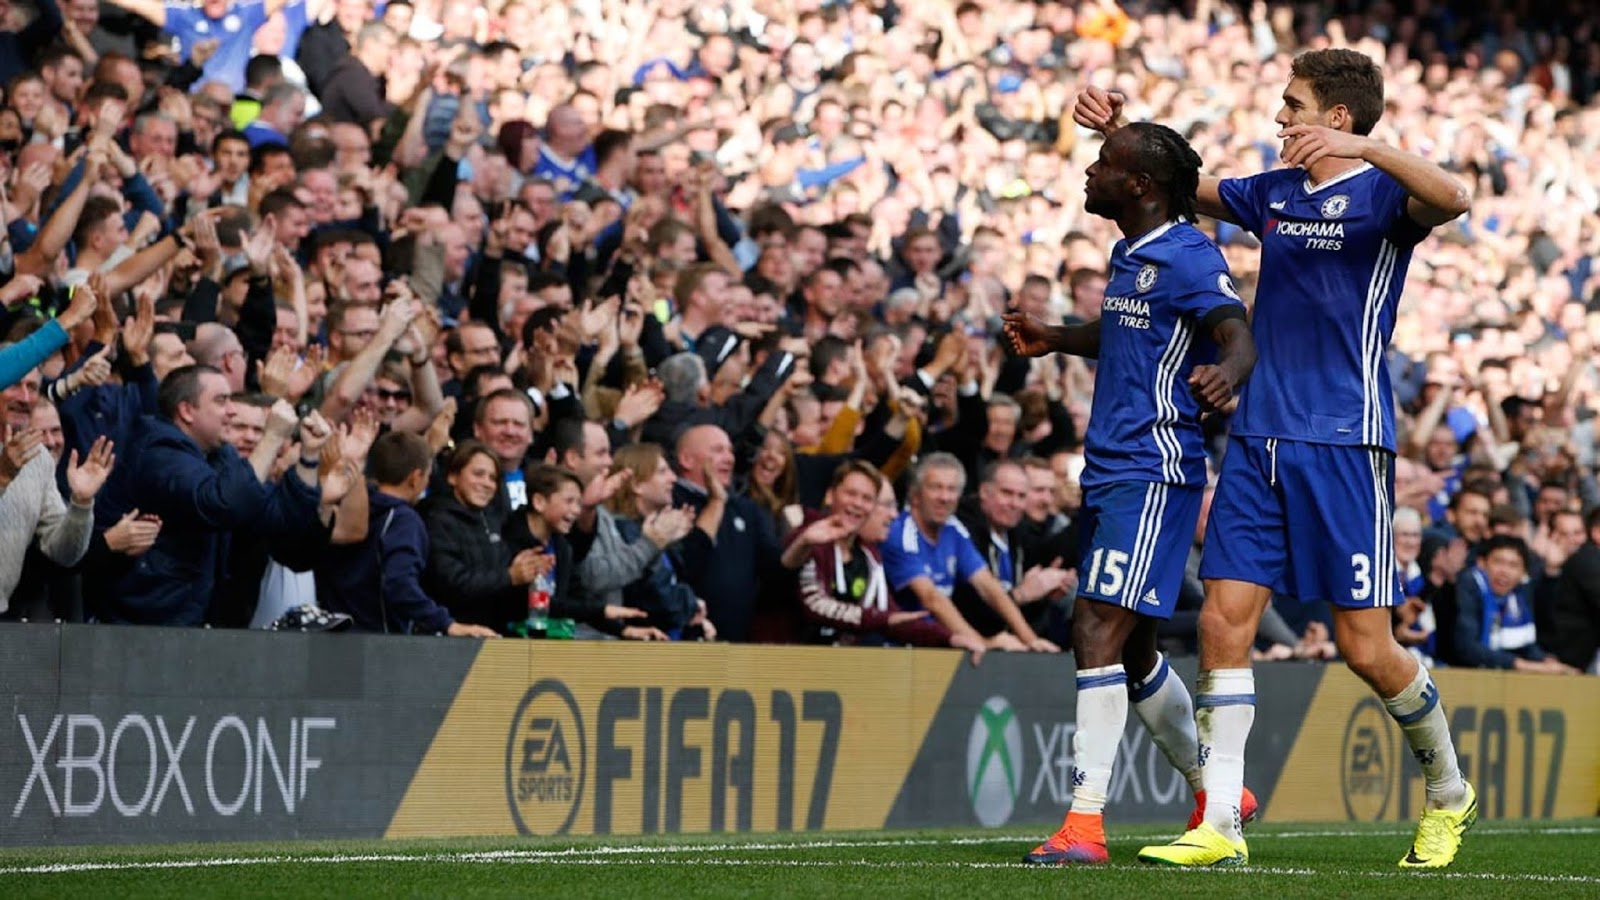 VICTOR MOSES 3